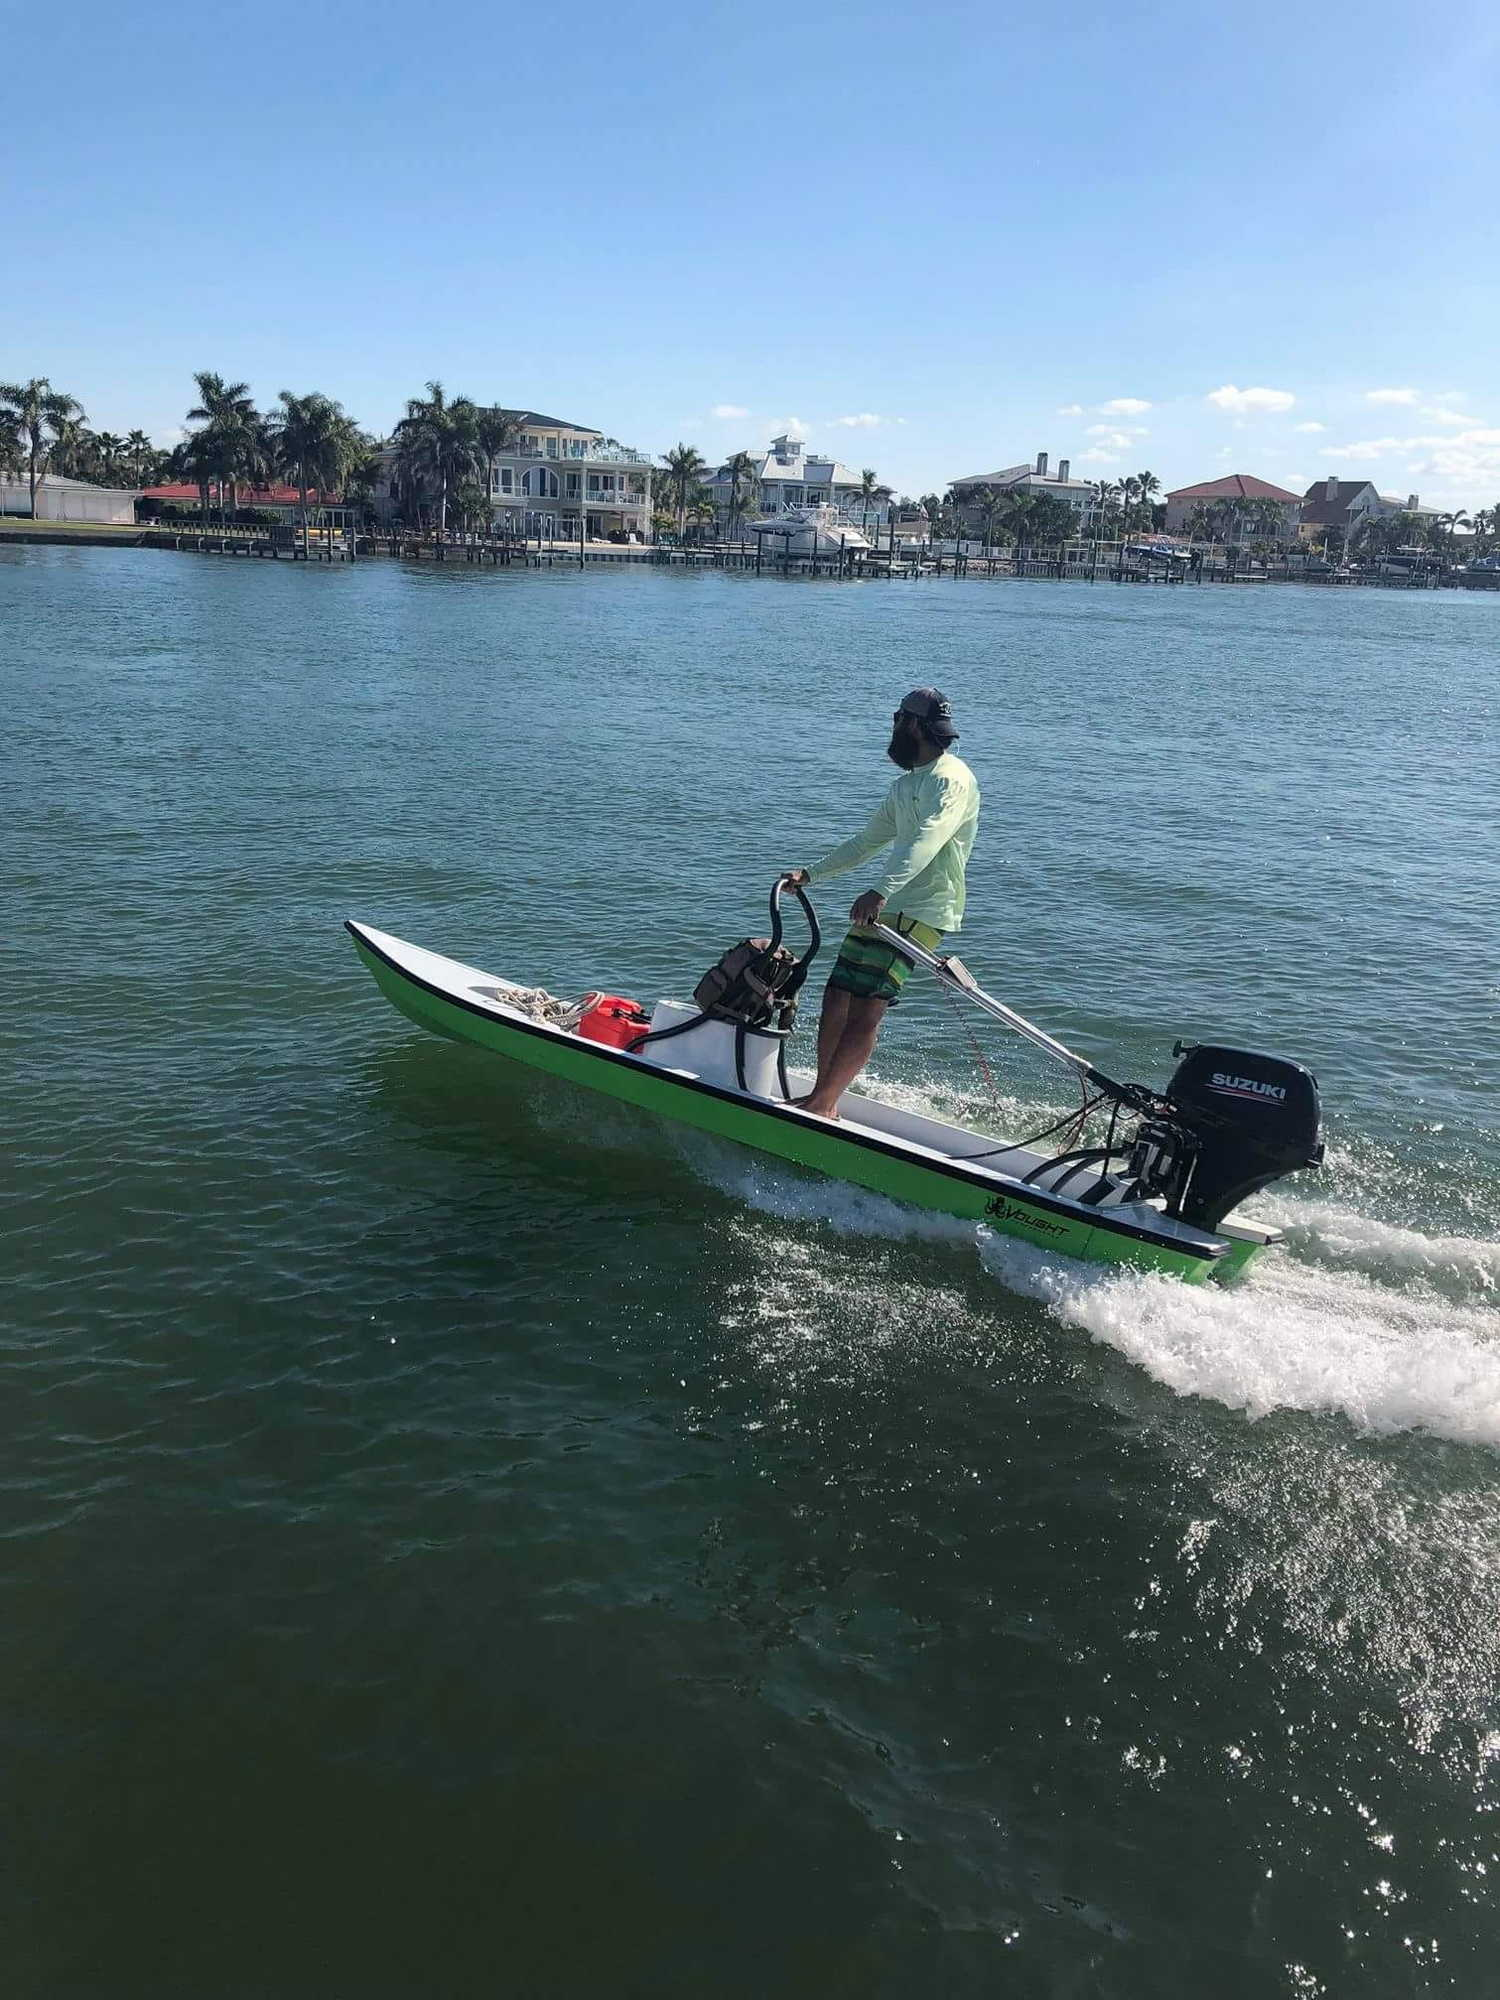 Stolen Production Demo Boat - Pinellas Park, FL - The Hull